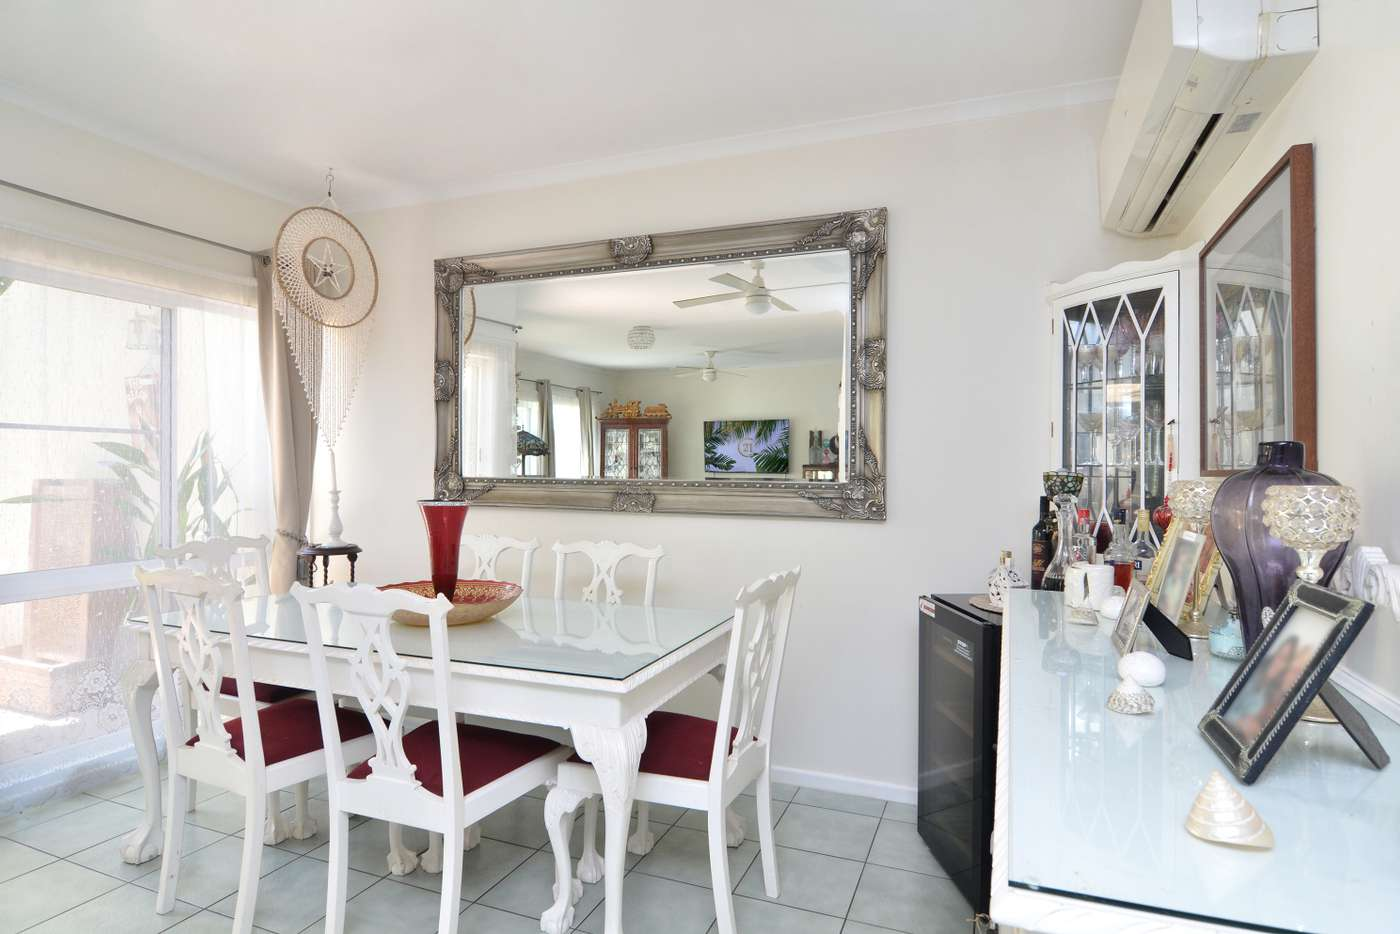 Seventh view of Homely apartment listing, 5/11 Tropic Court, Port Douglas QLD 4877